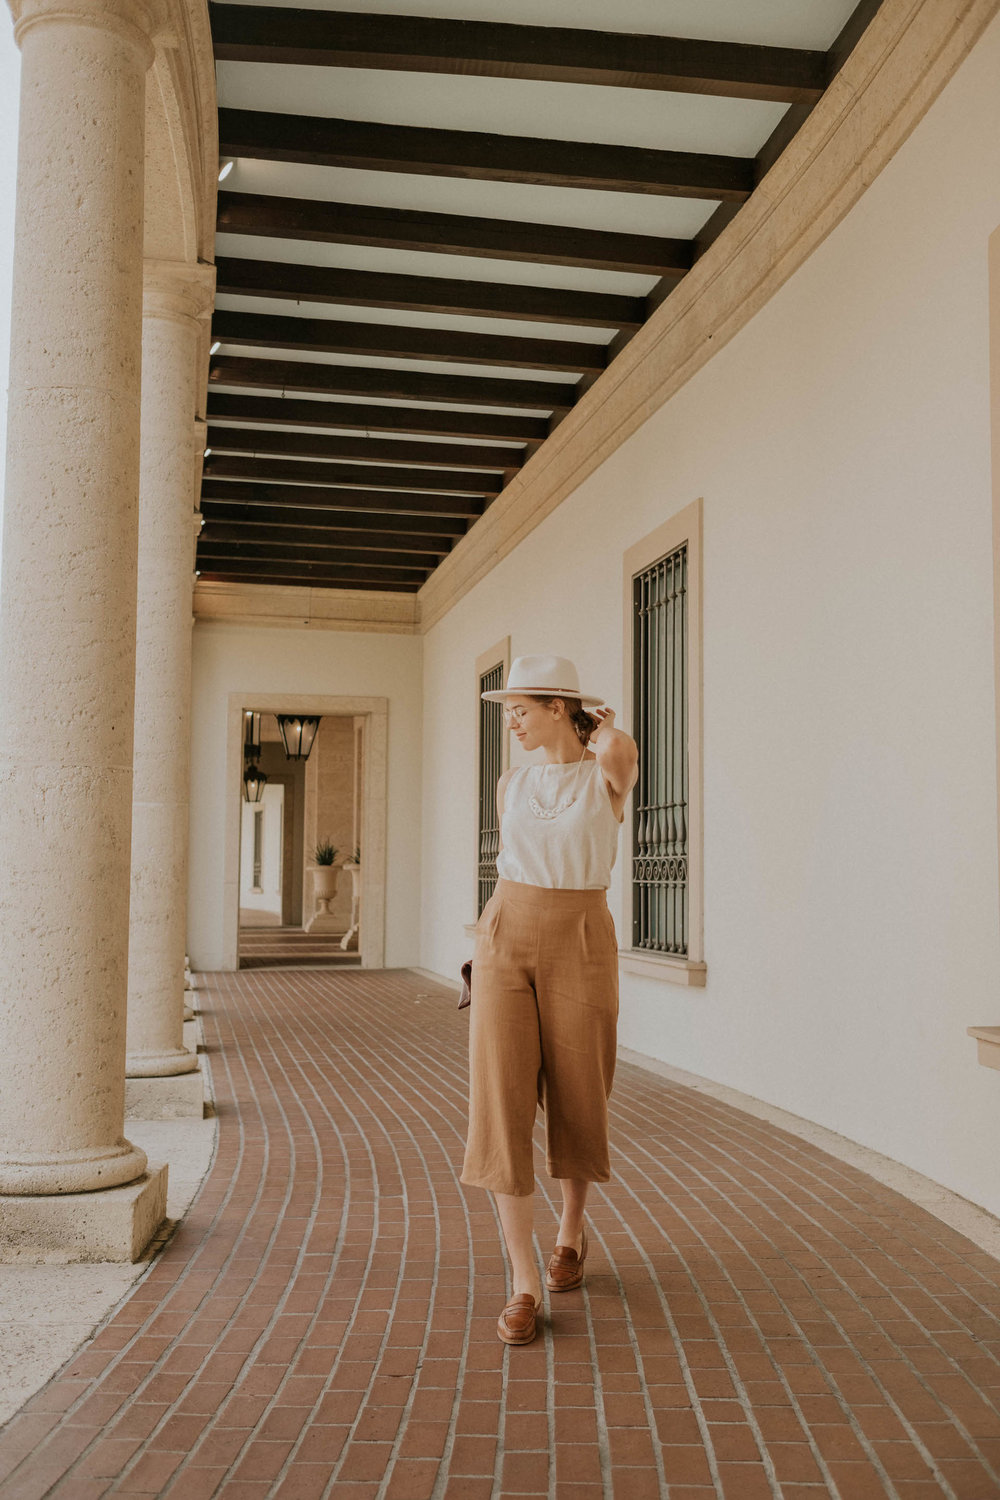 Featured:  Valentina Pant (Tan)  - I loooove the fit of these pants! Super cozy and easy to dress up or down! I've hardly taken them off since they arrived.